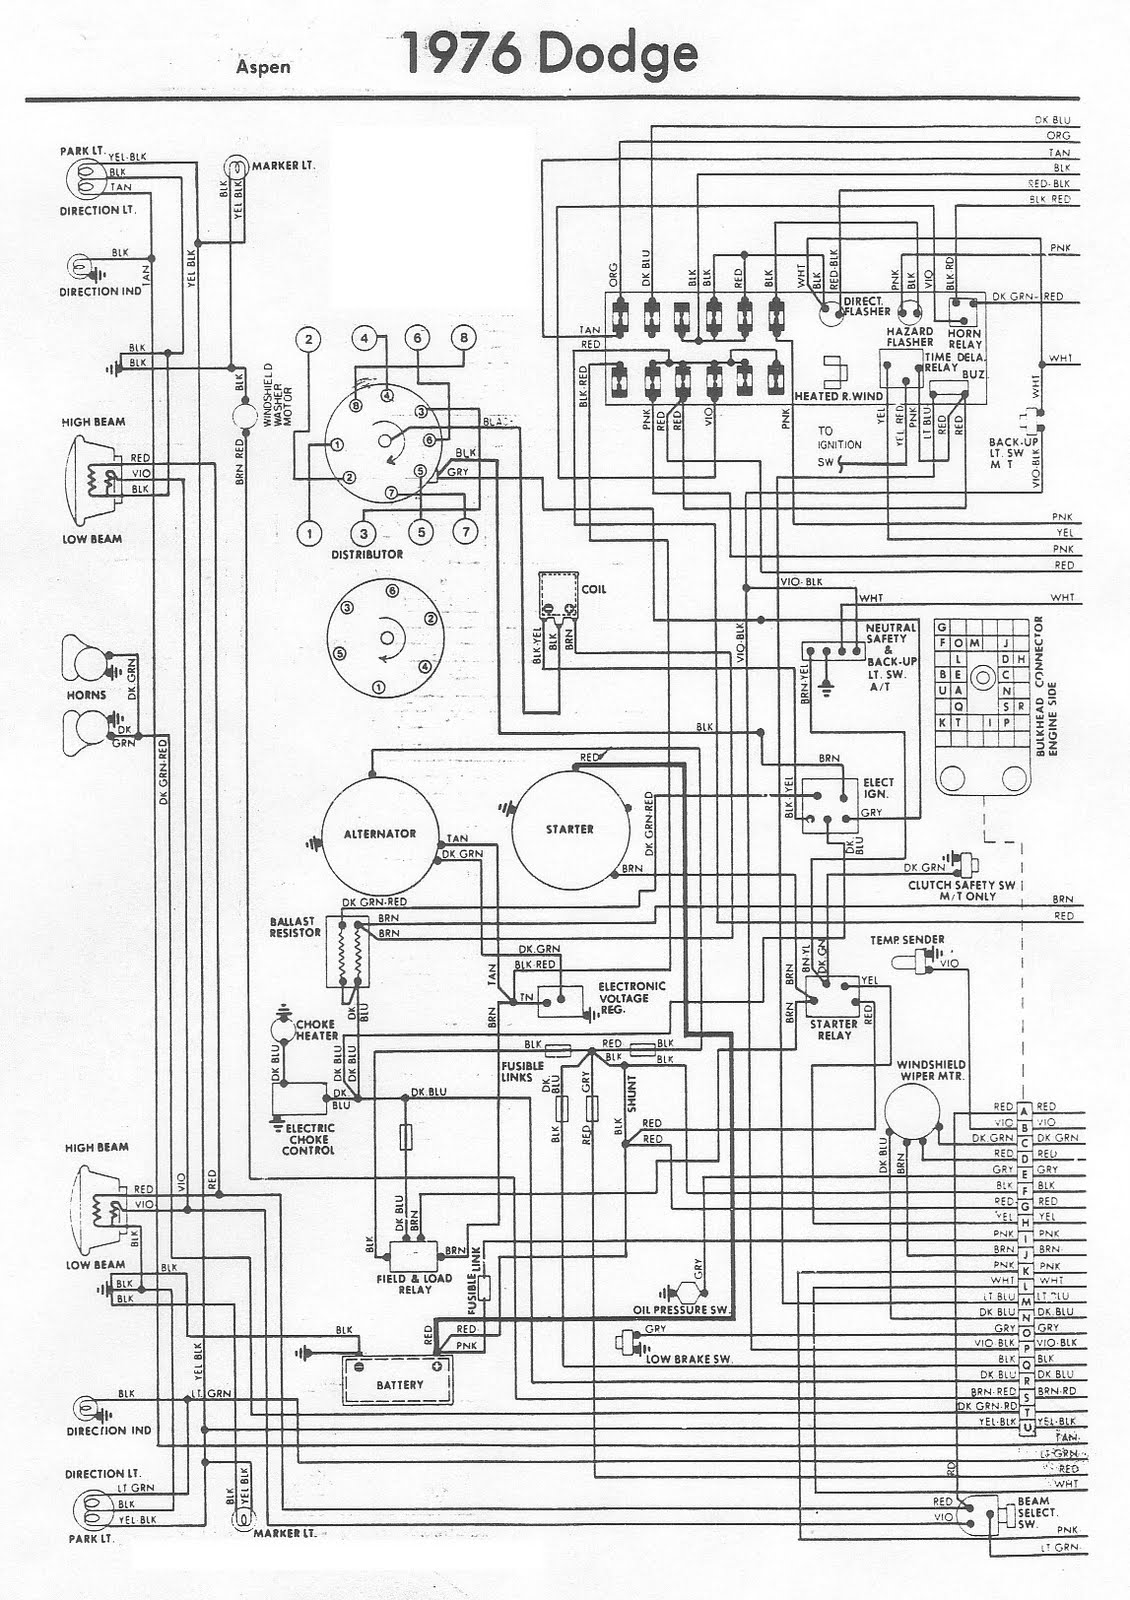 76_Dodge_Aspen_Engine_wiring dodge wiring diagrams free 1997 dodge caravan wiring diagram 2004 polaris sportsman 600 wiring diagram at readyjetset.co